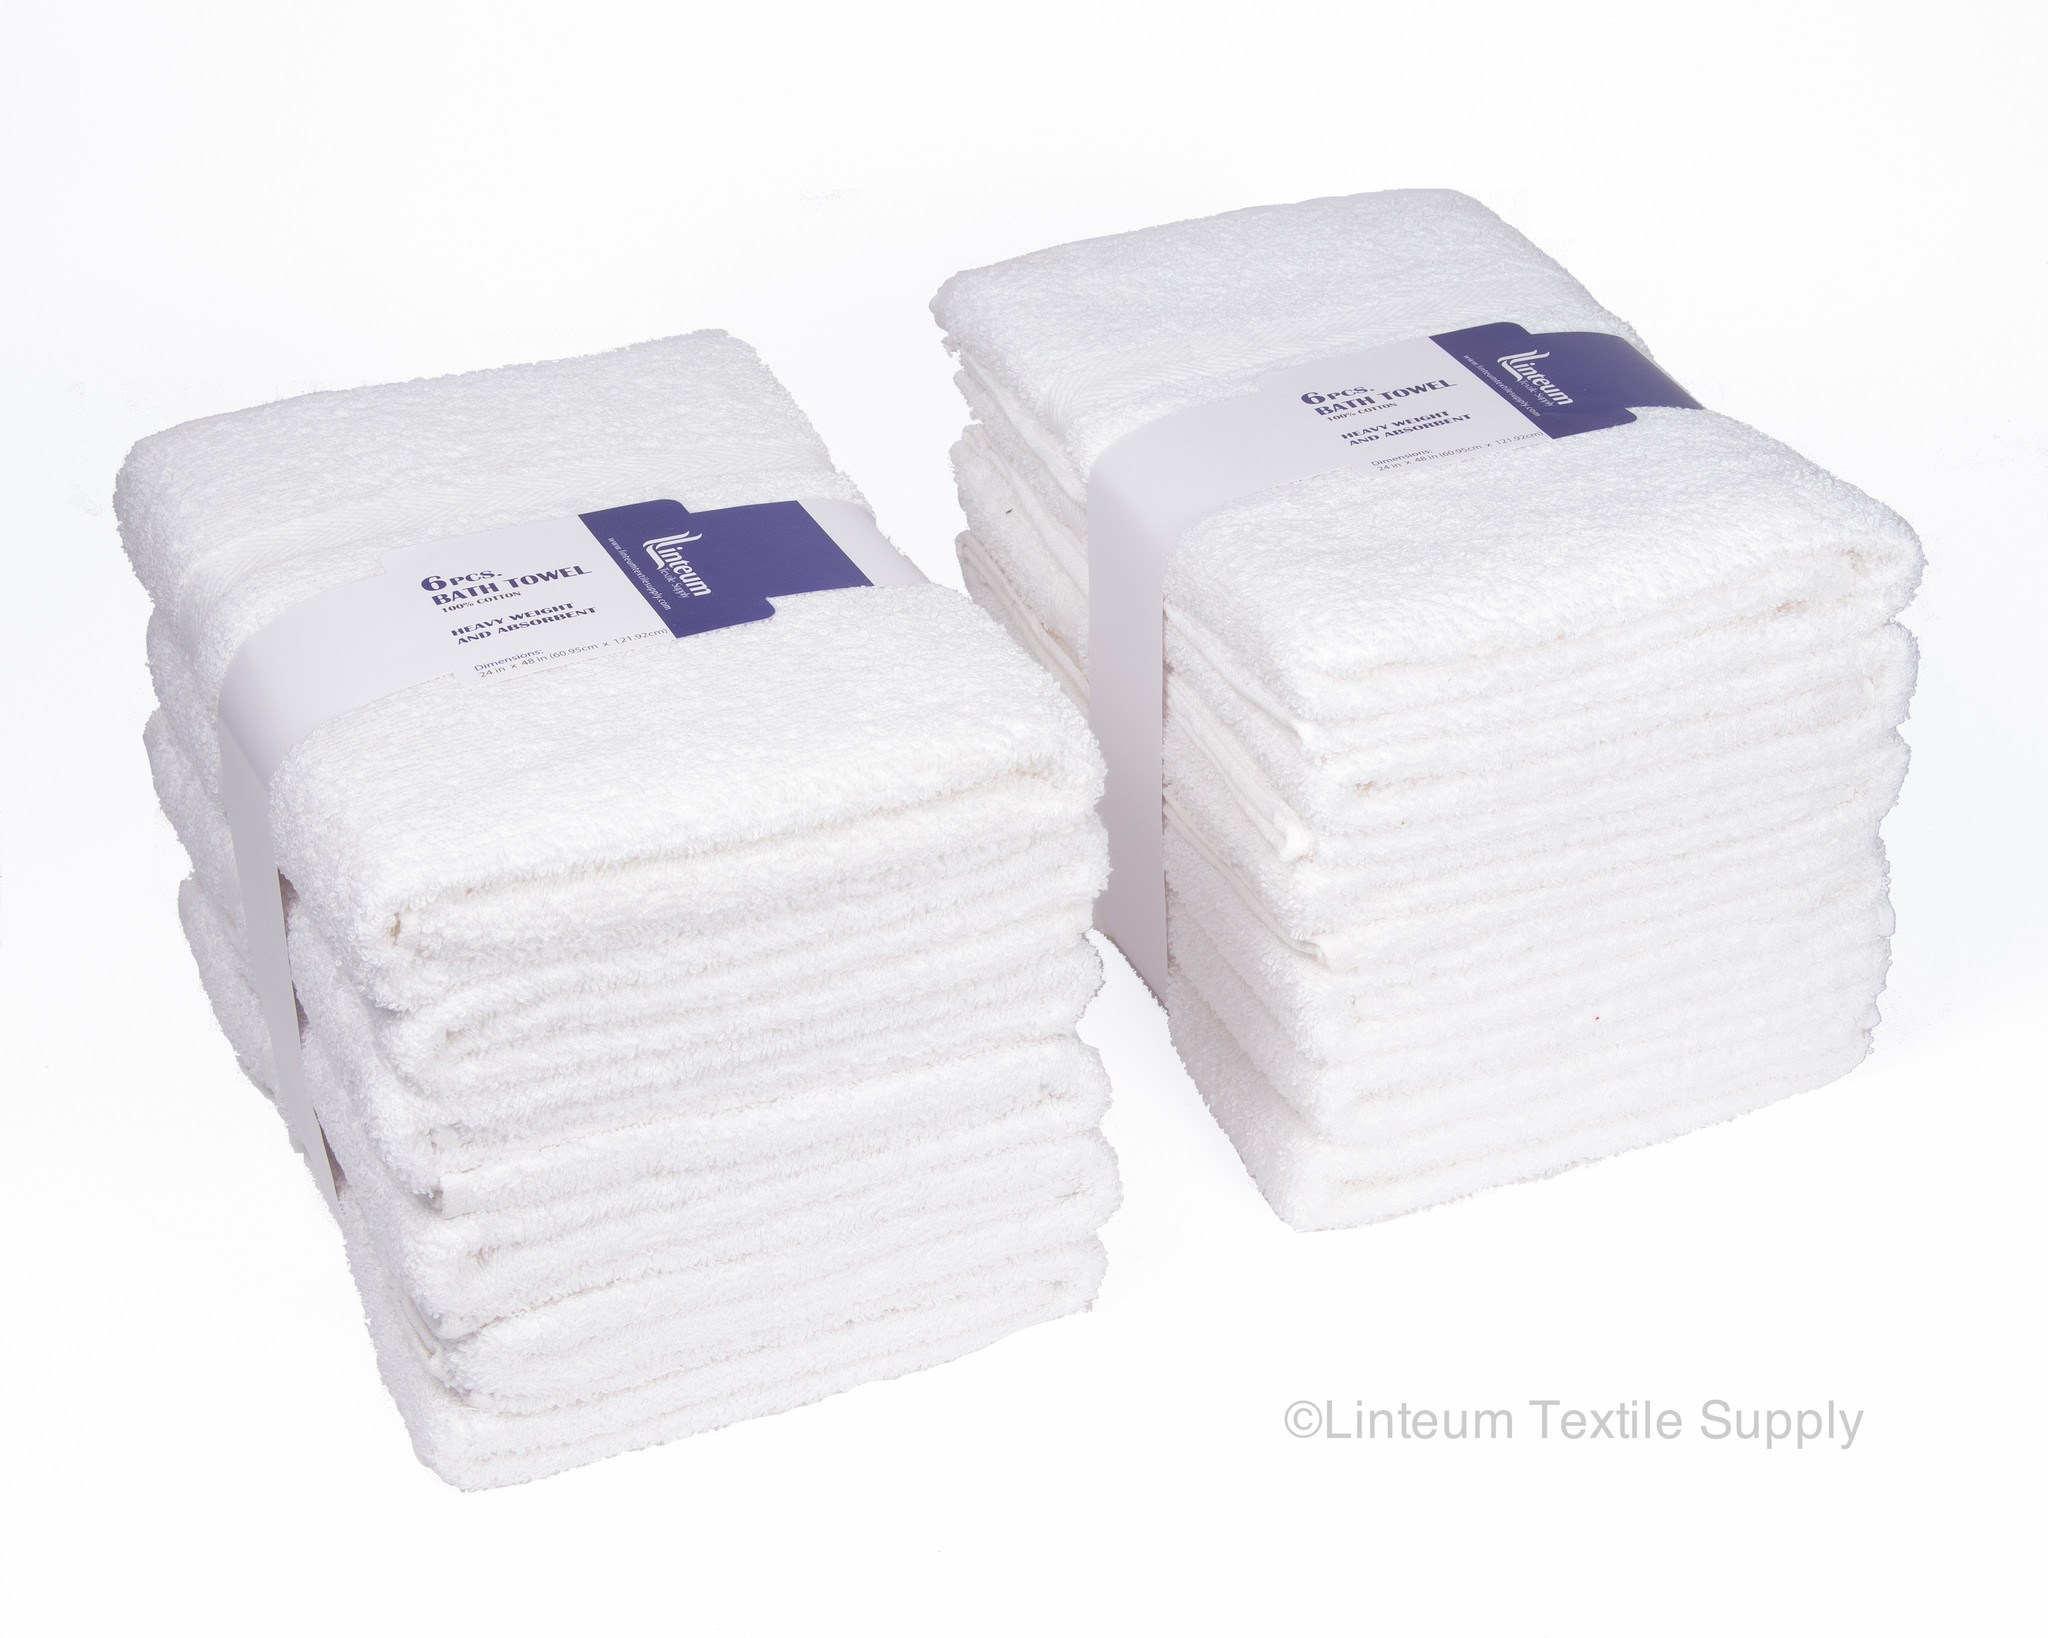 24x48 in. White Bath Towels Hotel-Quality 12-Pack by